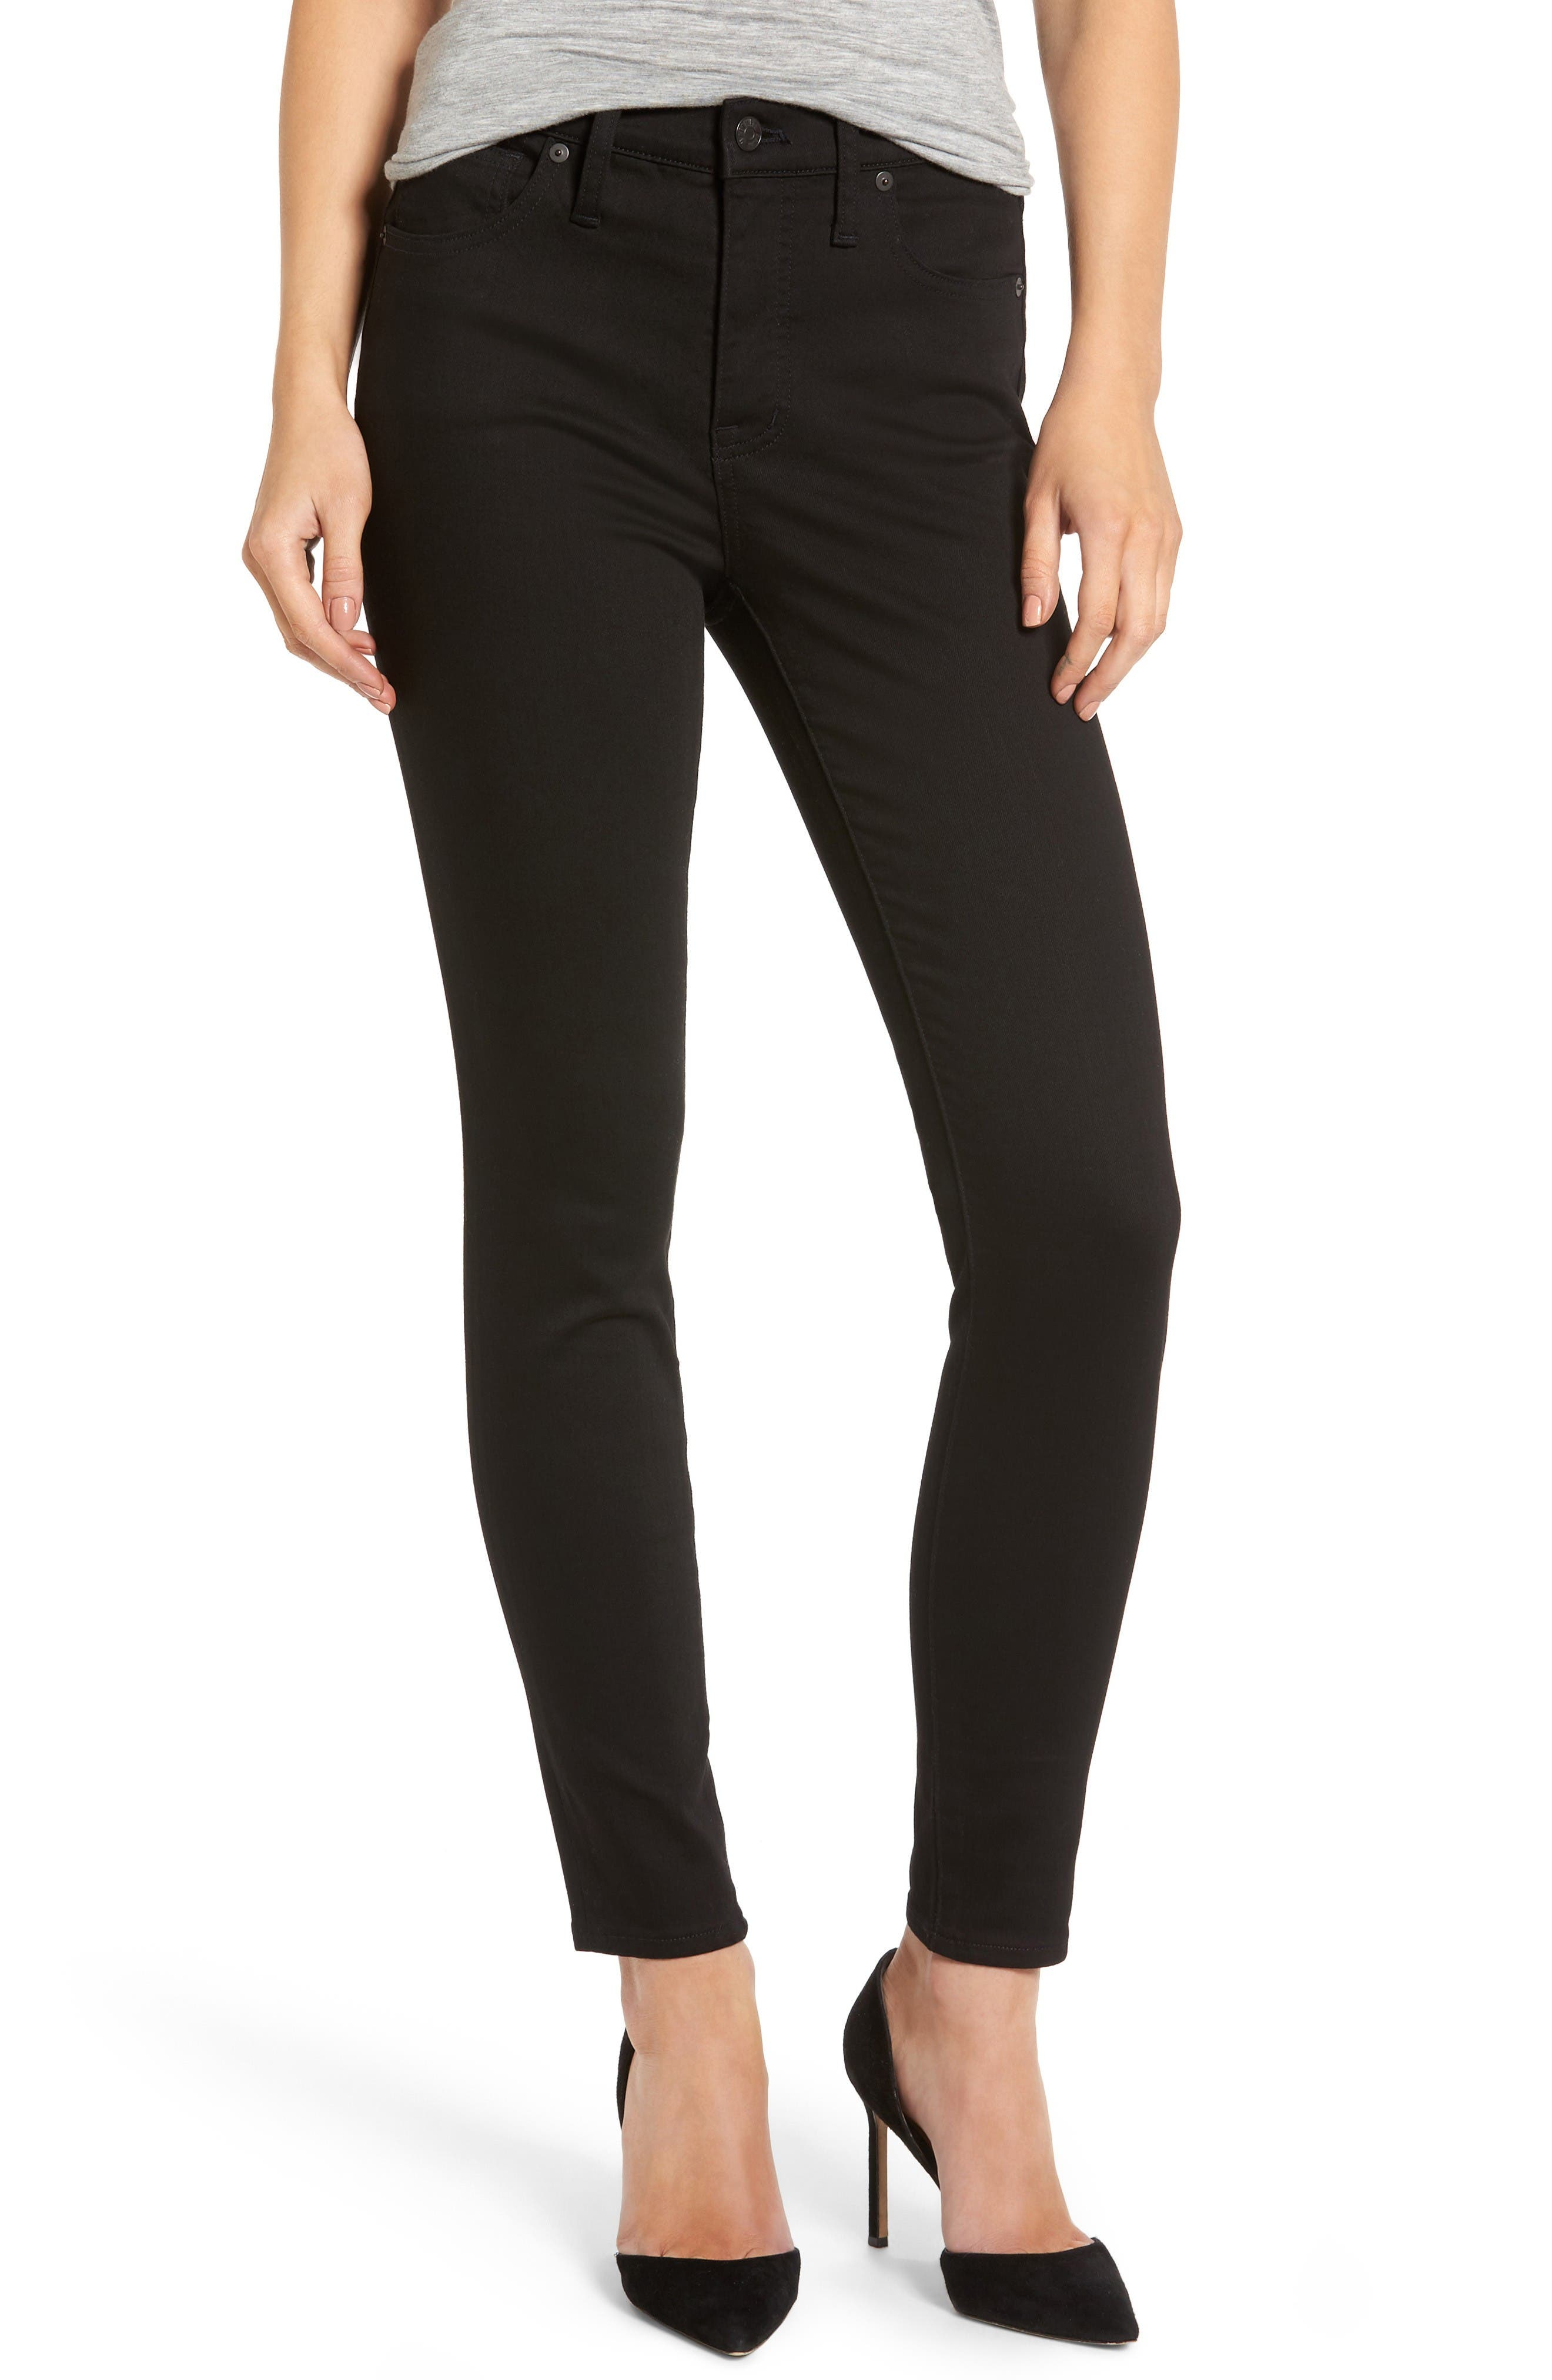 Alternate Image 1 Selected - Madewell 9-Inch High-Rise Skinny Jeans (Isko Stay Black™)